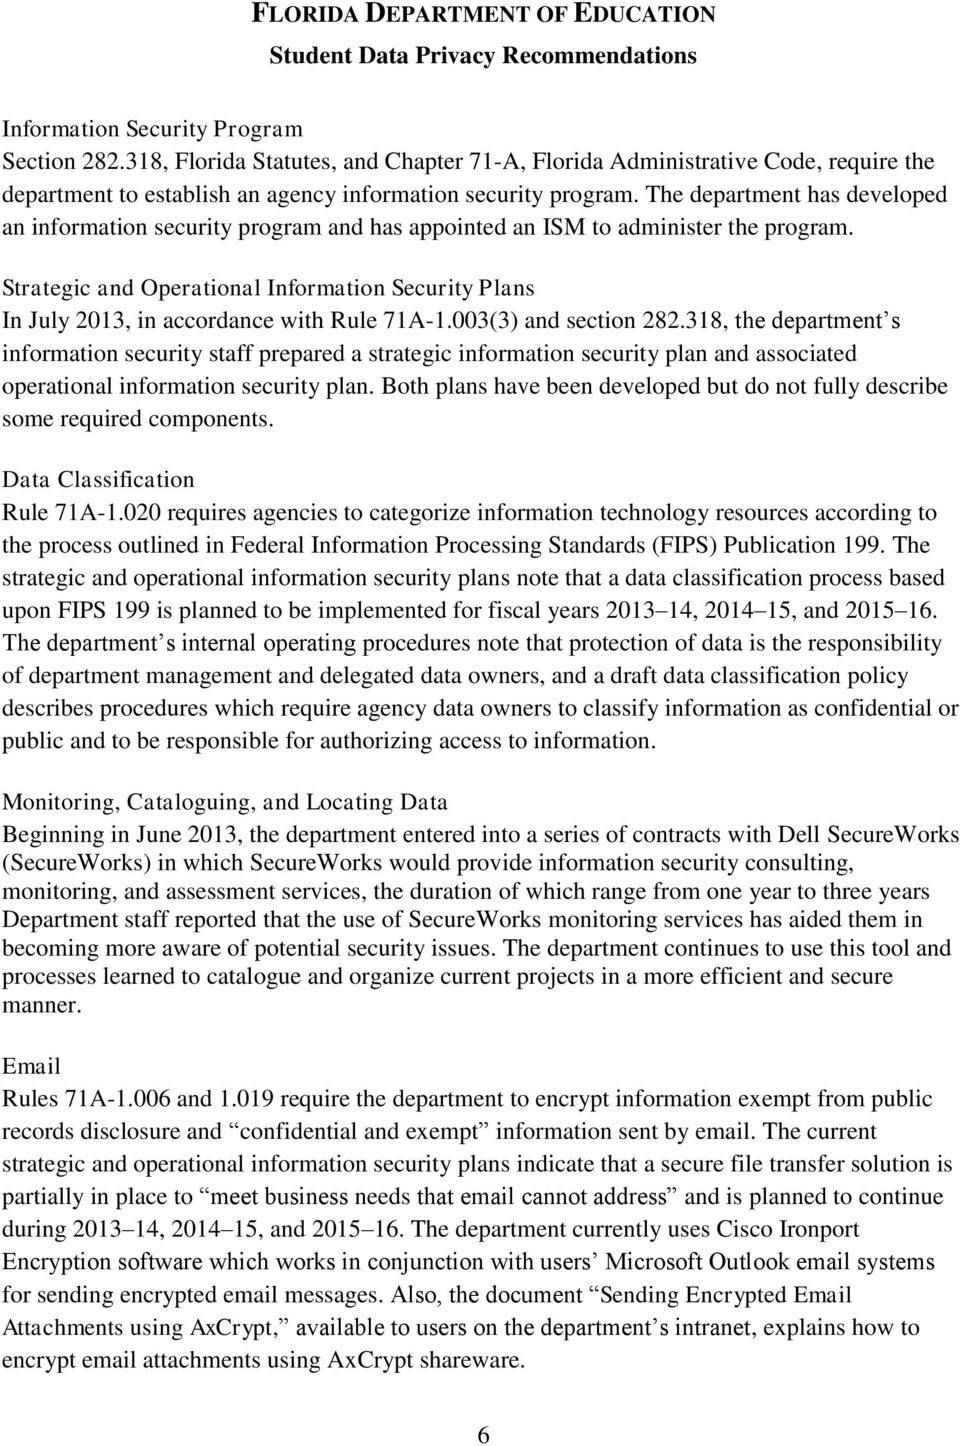 Strategic and Operational Information Security Plans In July 2013, in accordance with Rule 71A-1.003(3) and section 282.